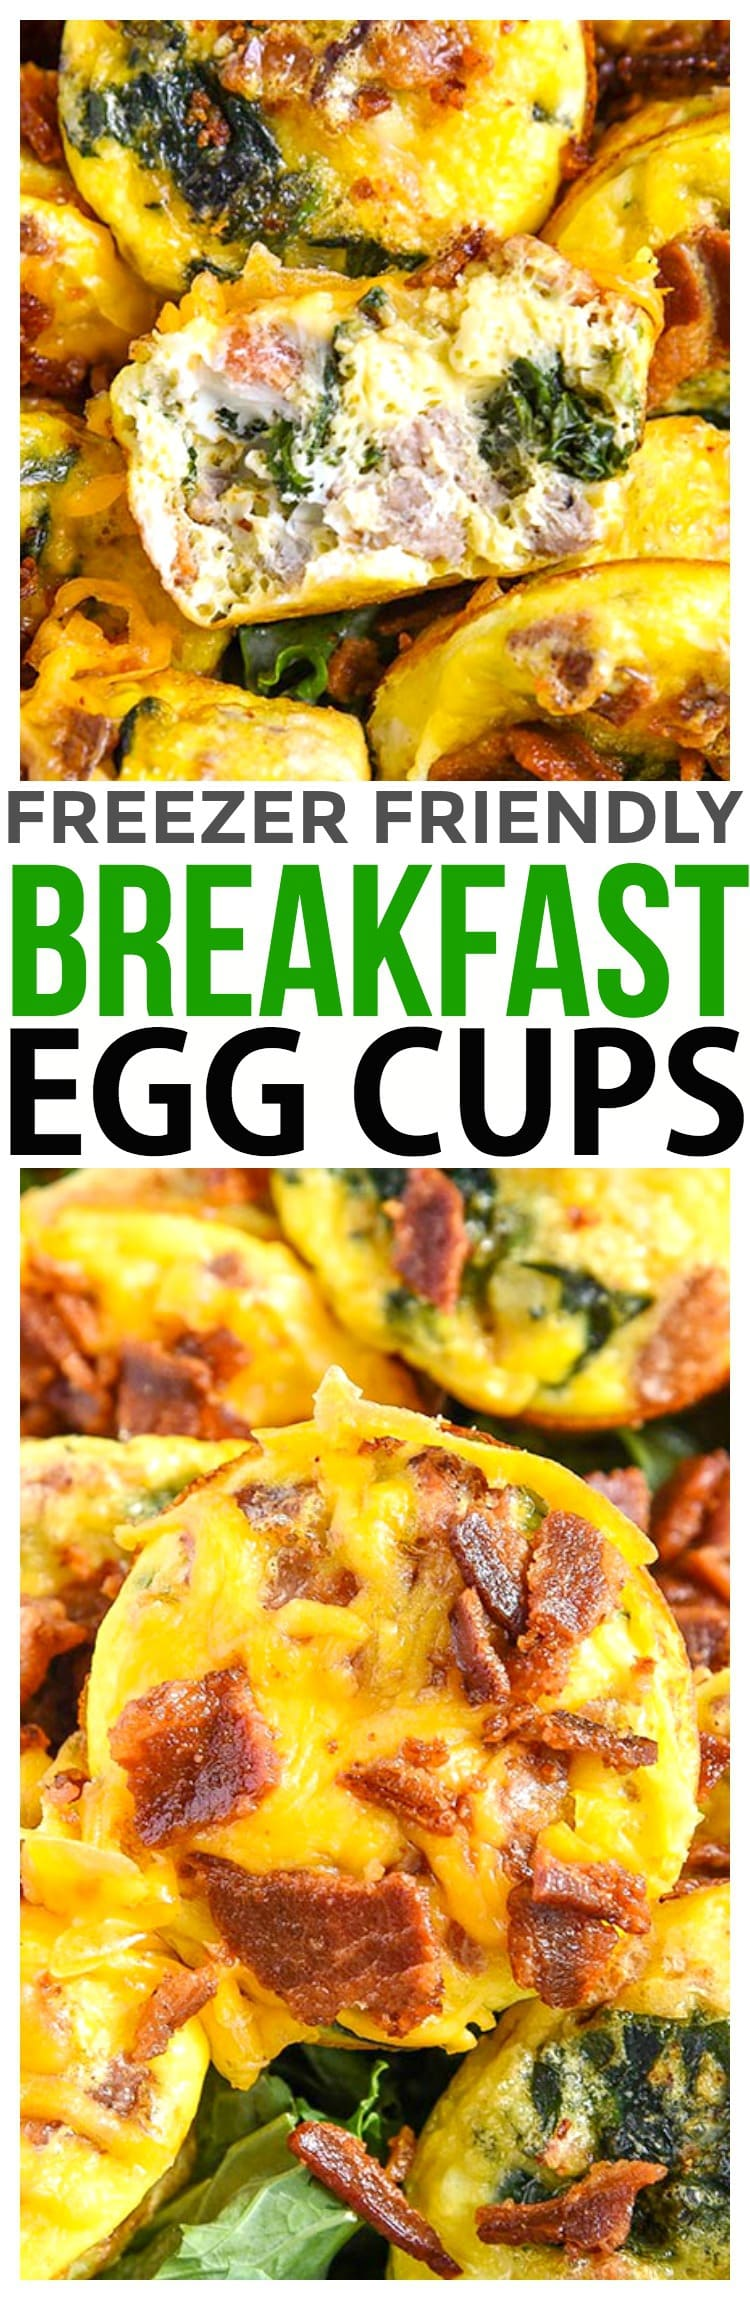 Freezer Friendly Breakfast Recipe - Serve Breakfast Egg Cups for Easter Brunch or make these easy baked egg muffins recipe for freezer friendly breakfast meal planning.